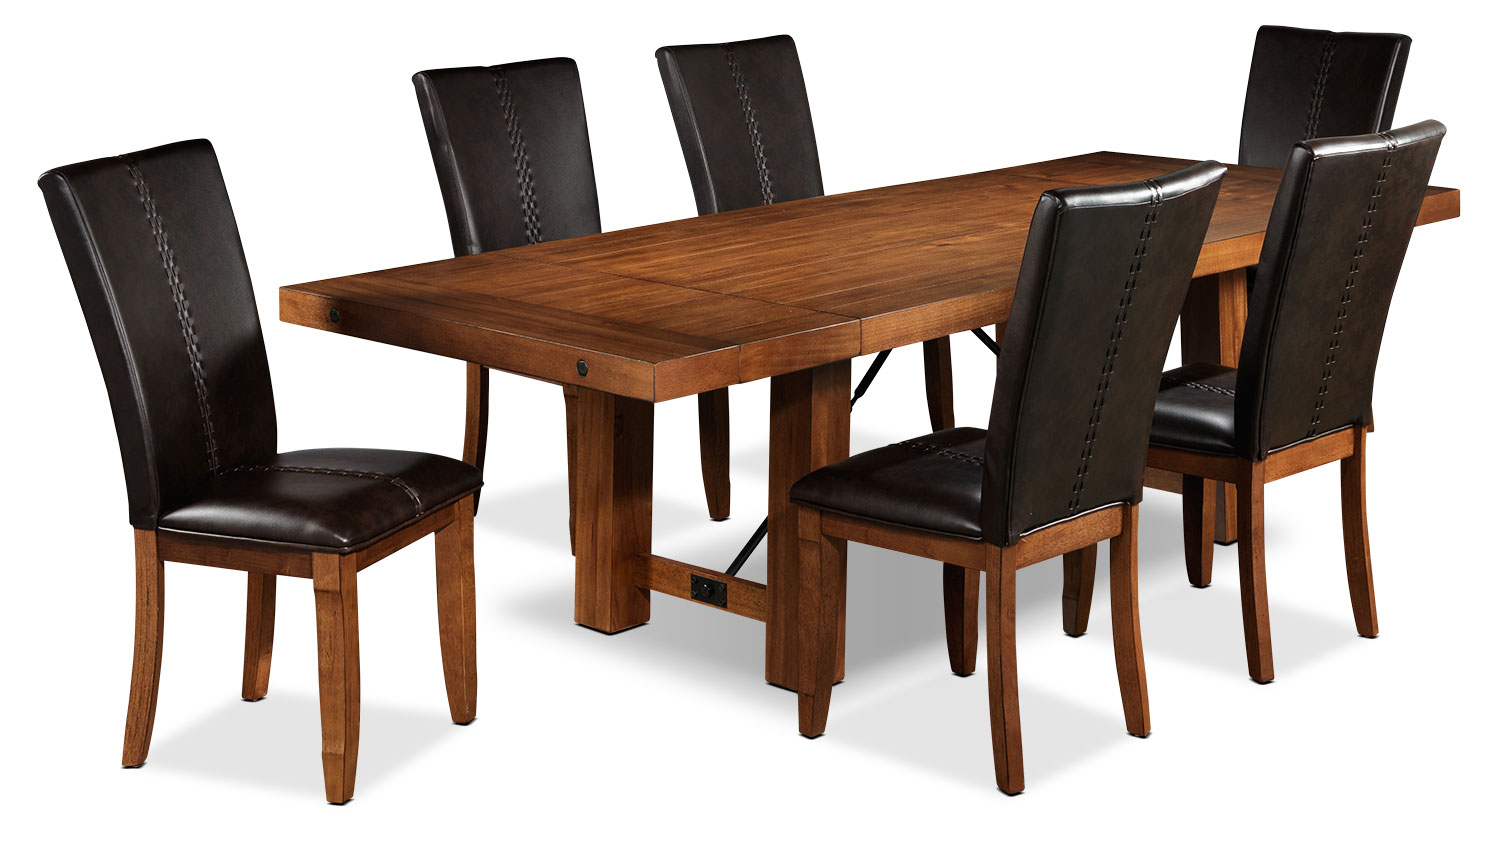 Helix 7 piece dining room set oak leon 39 s for Leon s dining room tables